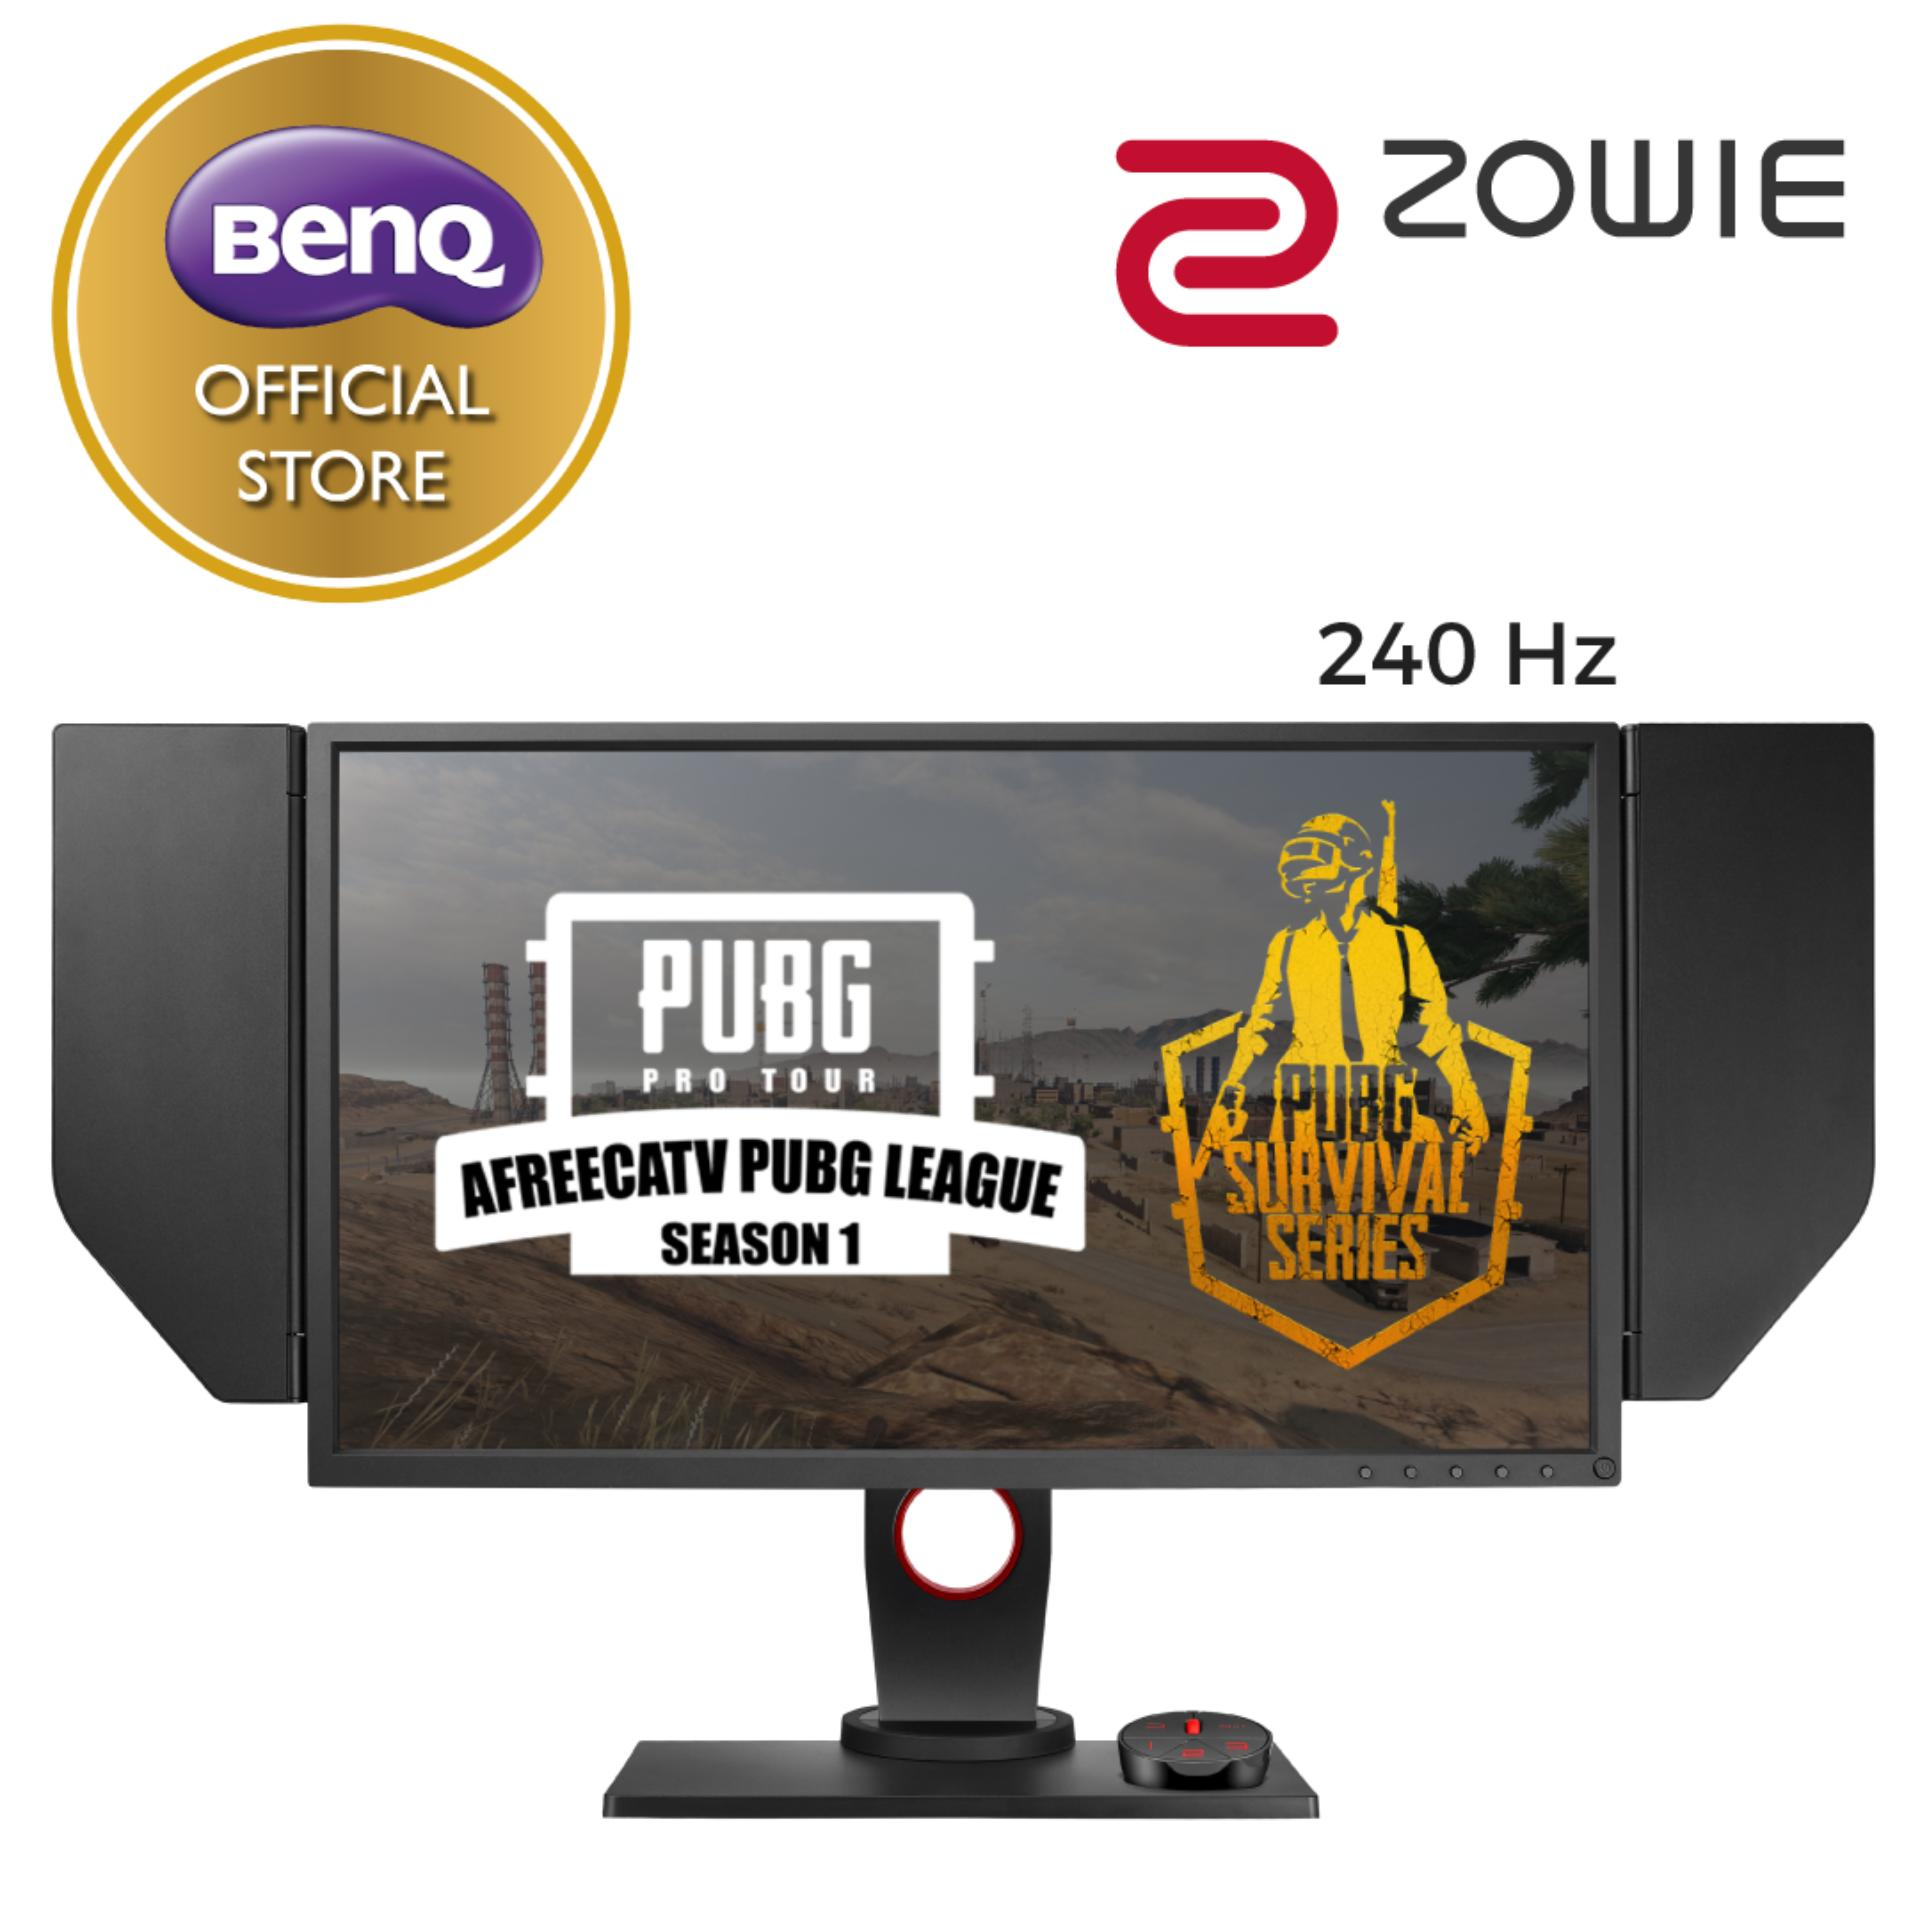 Best Buy Benq Zowie Xl2546 24 5 Inch 24 25 240Hz With Dyac Technology 1Ms Esports Gaming Monitor Ready For Pubg